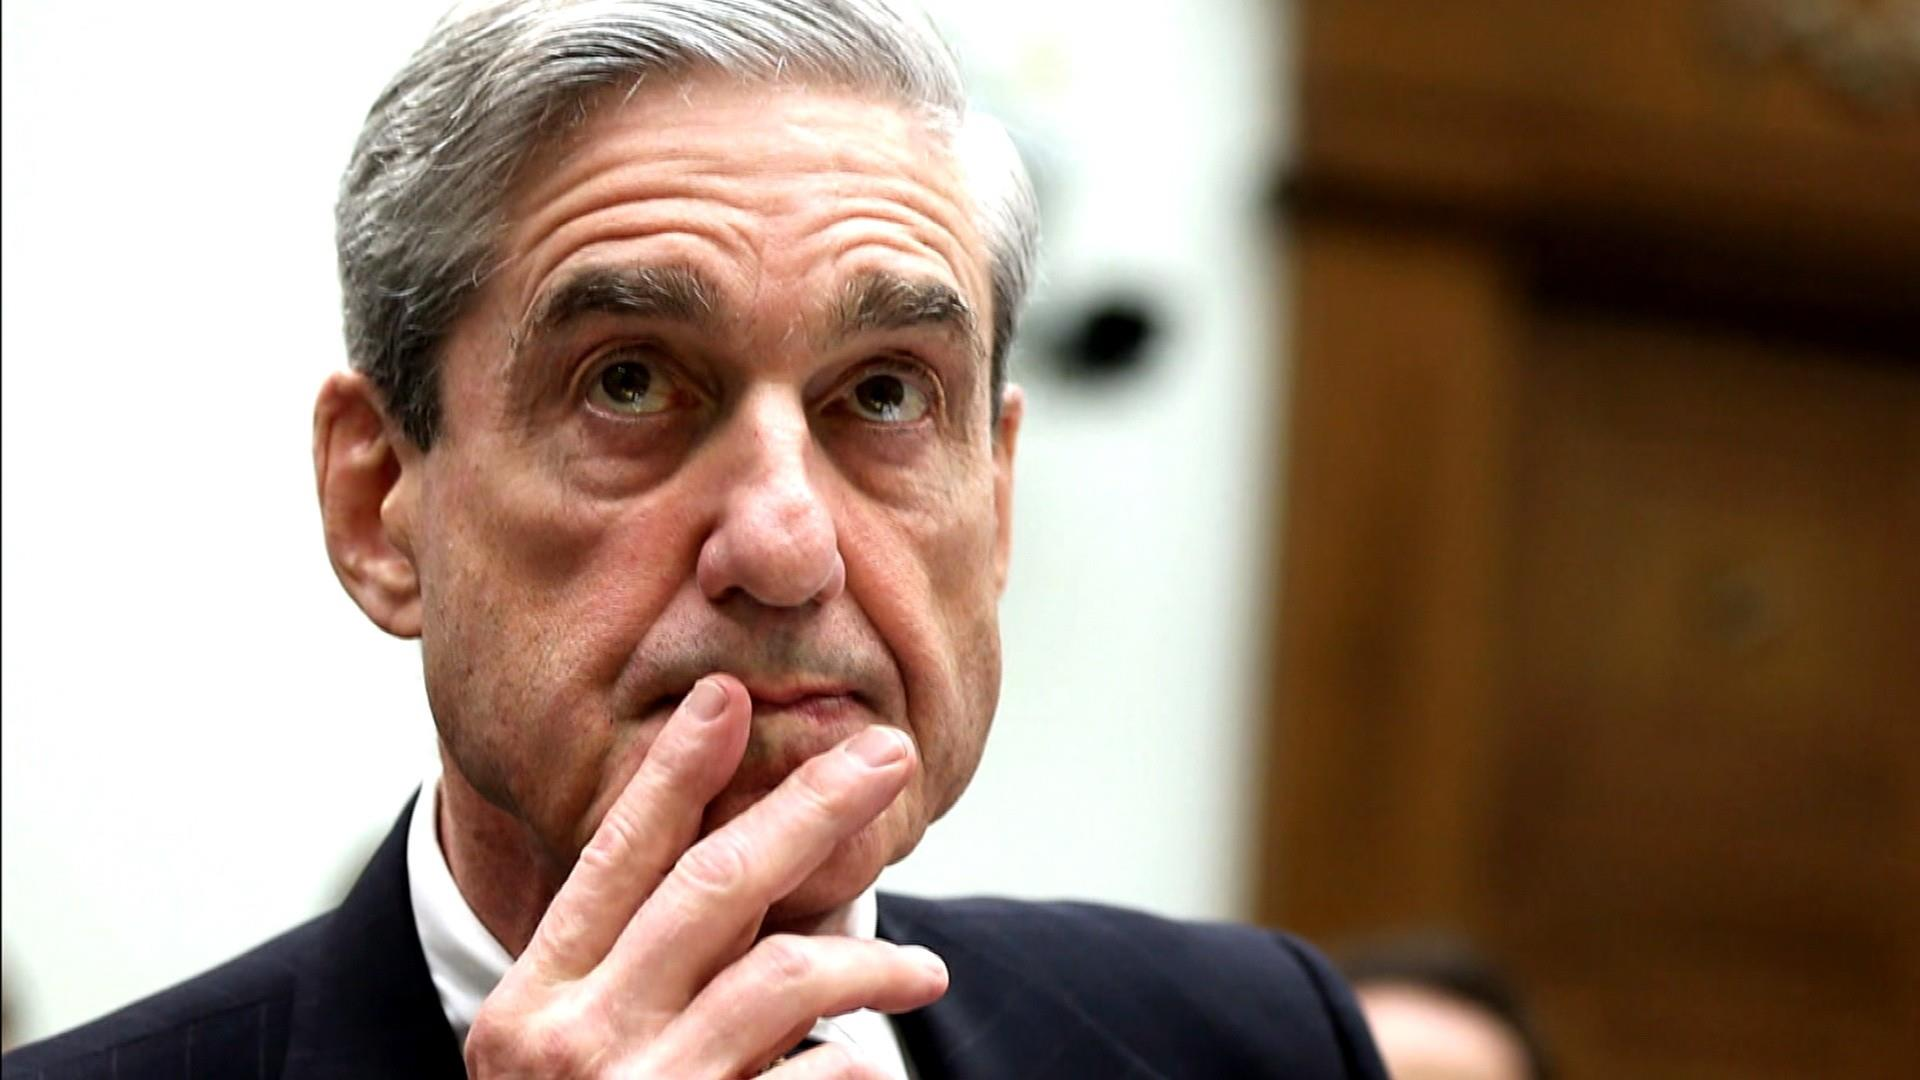 Mueller report delayed as Washington ramps up for busy week ahead